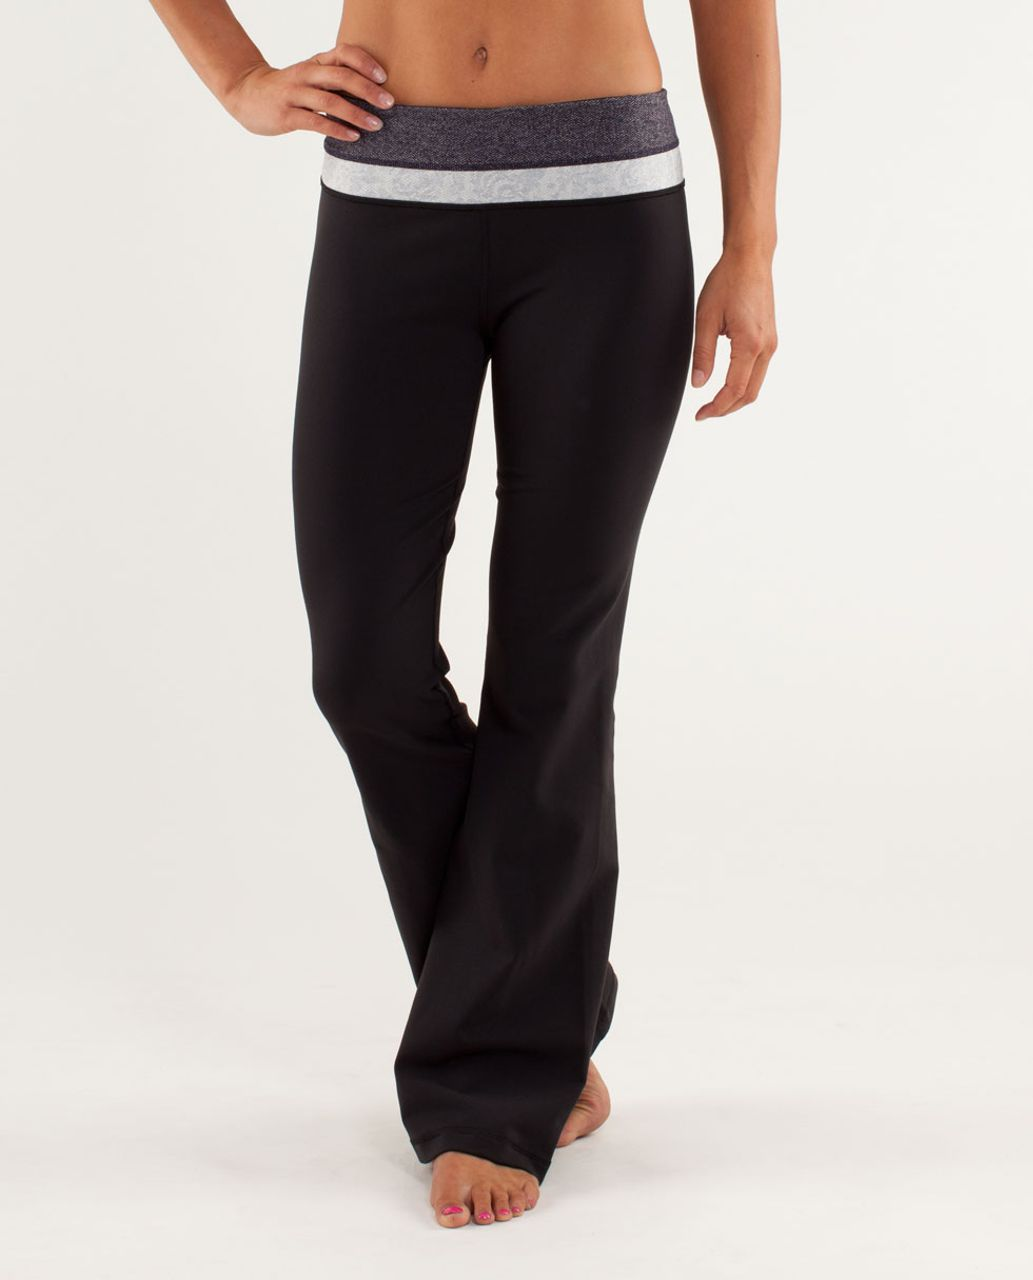 7e9859da1 Lululemon Groove Pant  Slim (Regular) - Black Swan   Herringbone Black Swan    Rose Herringbone Polar Cream - lulu fanatics